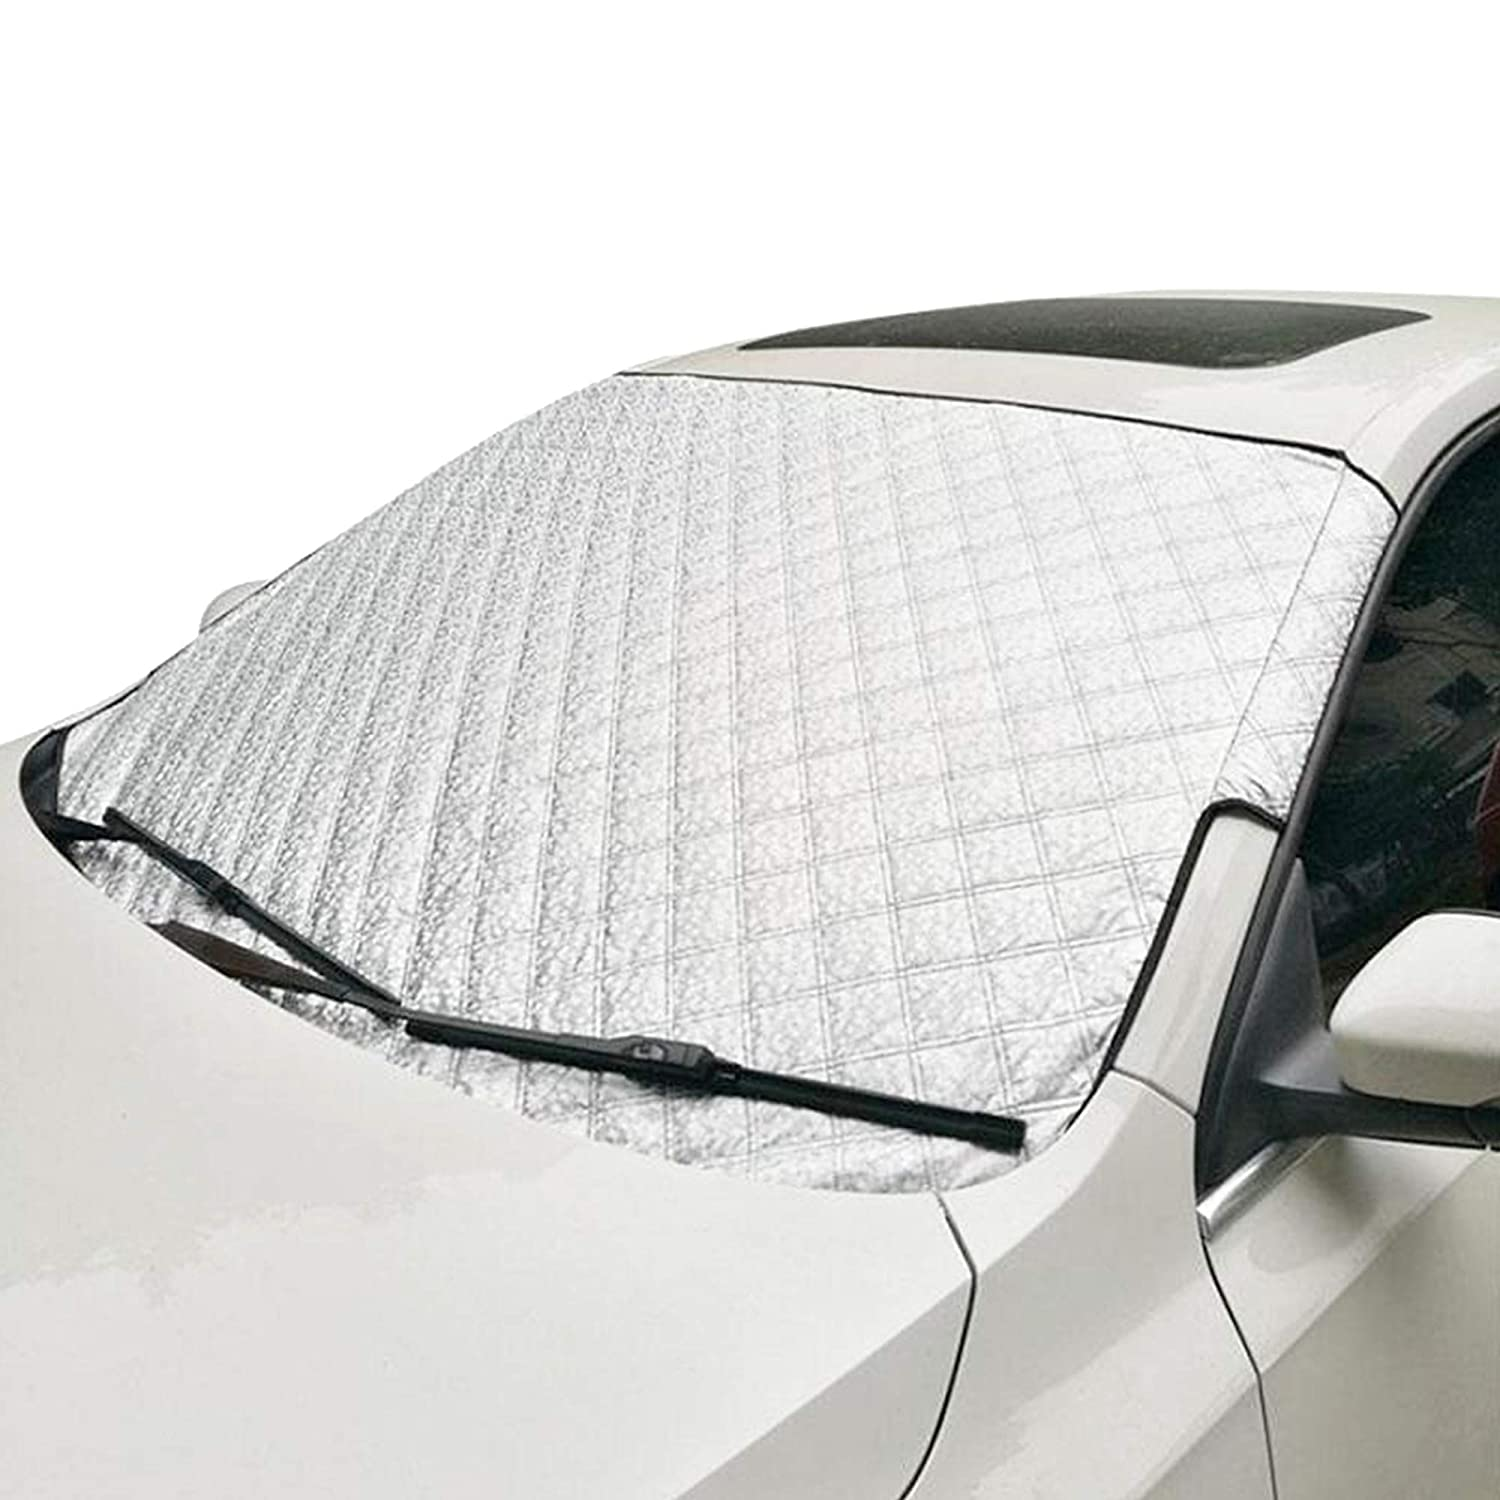 Durable /& Heavy Duty Magnetic screen cover -Windshield Ice cover- Protects against Frost Easy Installation Snow Car Windscreen Cover Dust Sun UV Perfect Size for most Cars Waterproof Ice